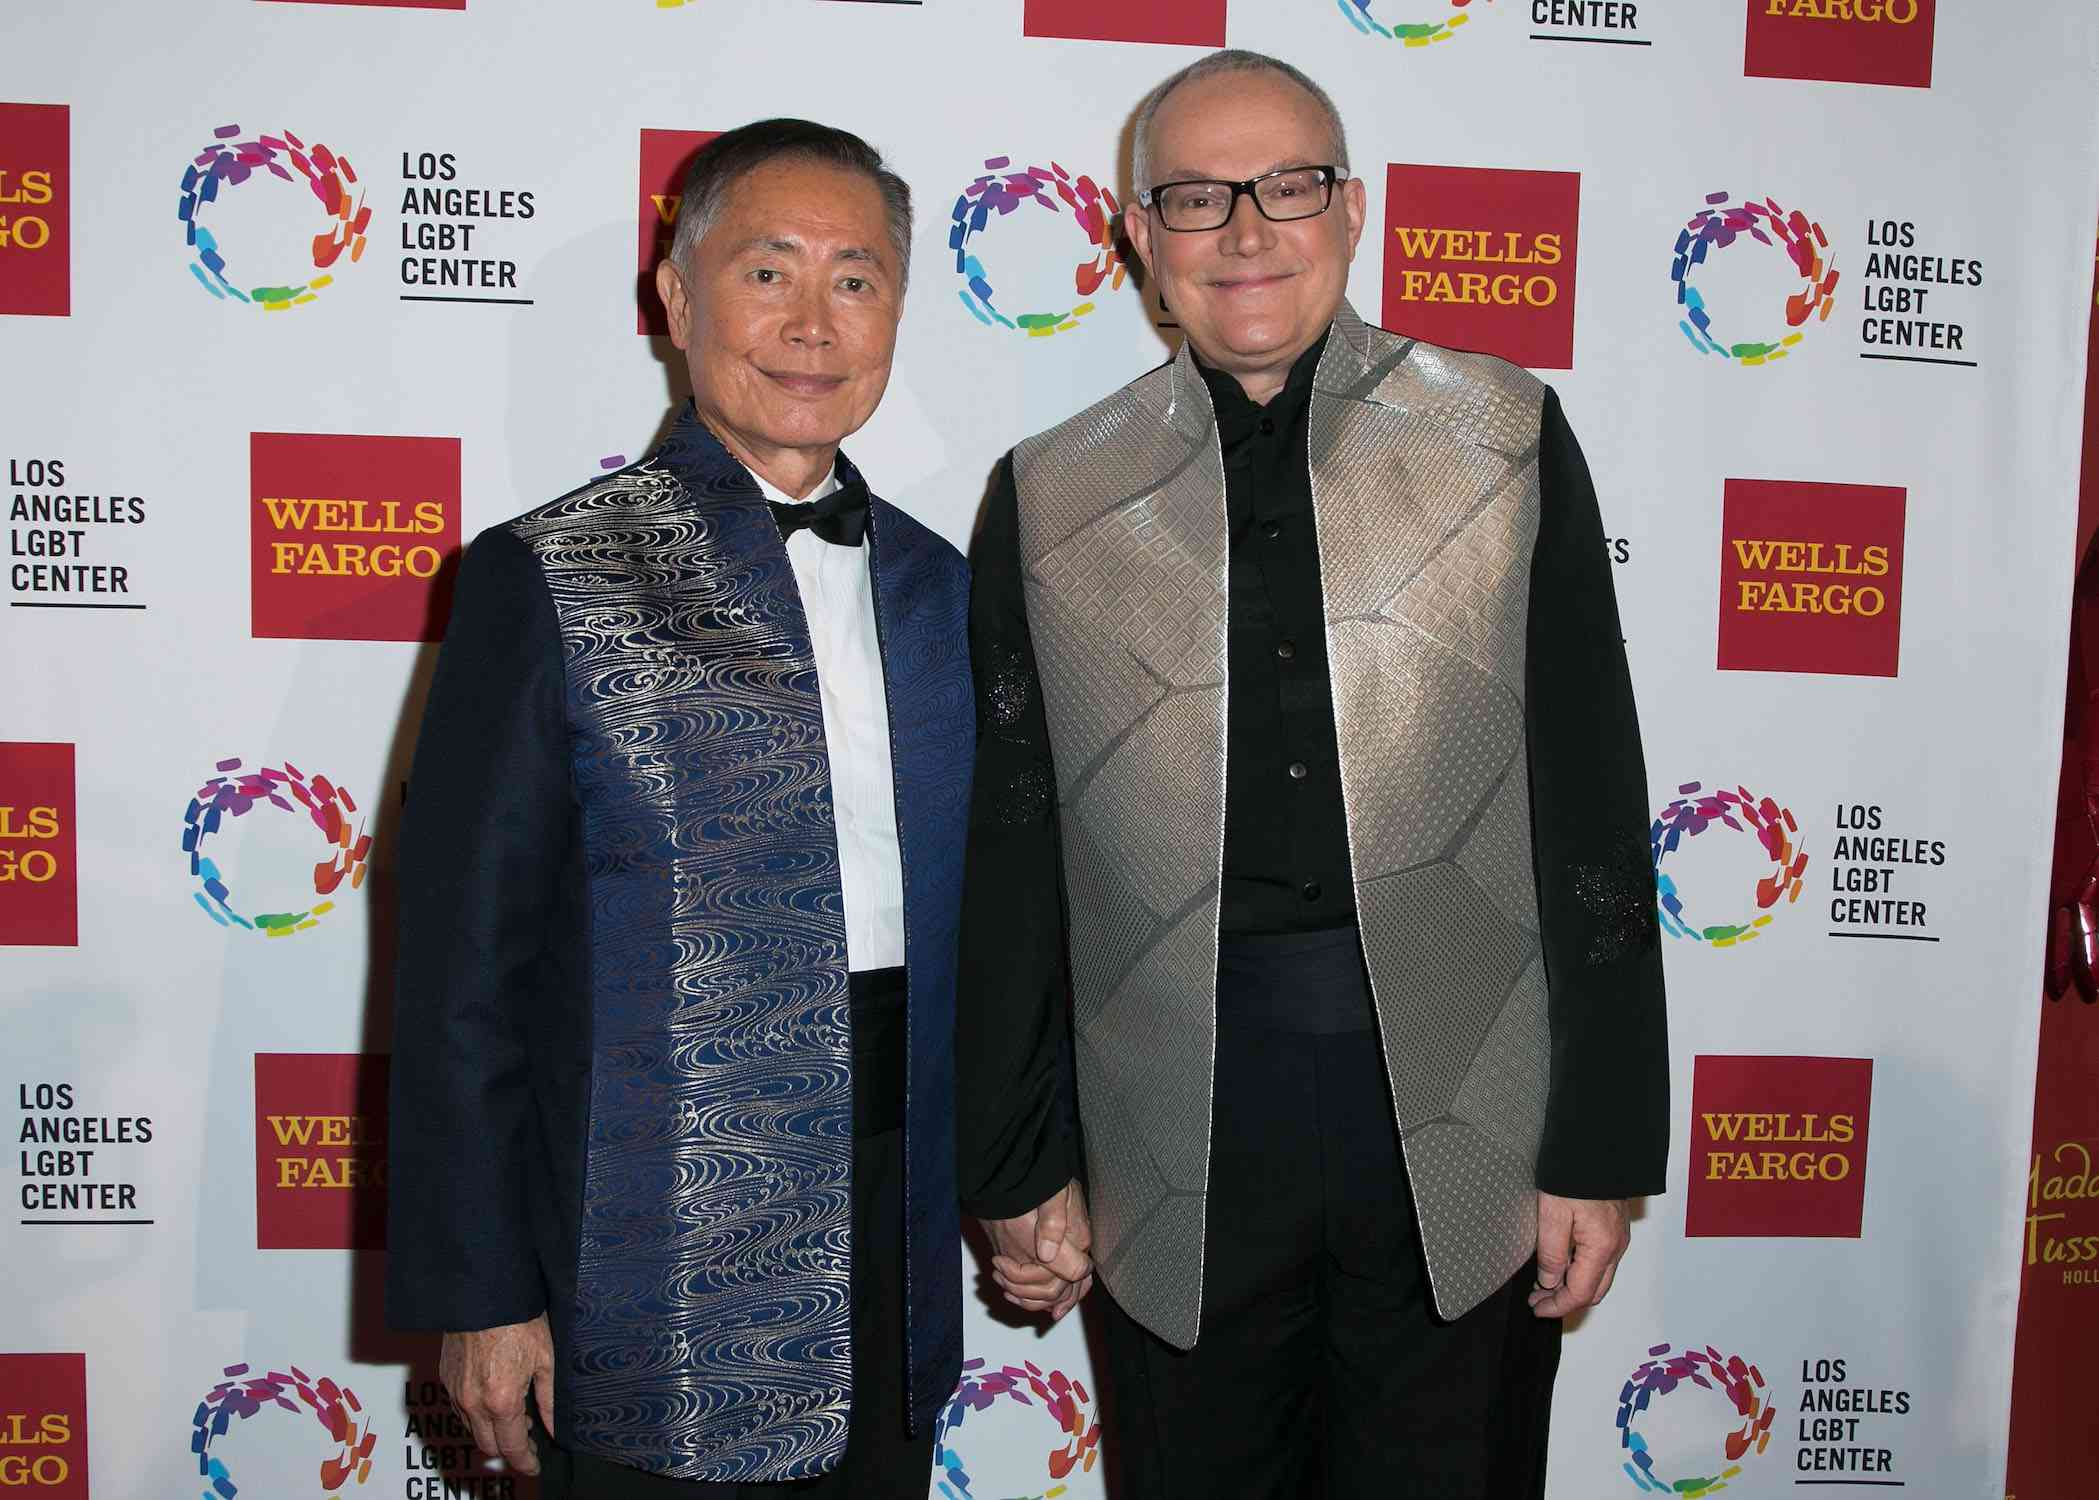 George Takei holds husband Brad Takei's hand in matching printed suit jackets